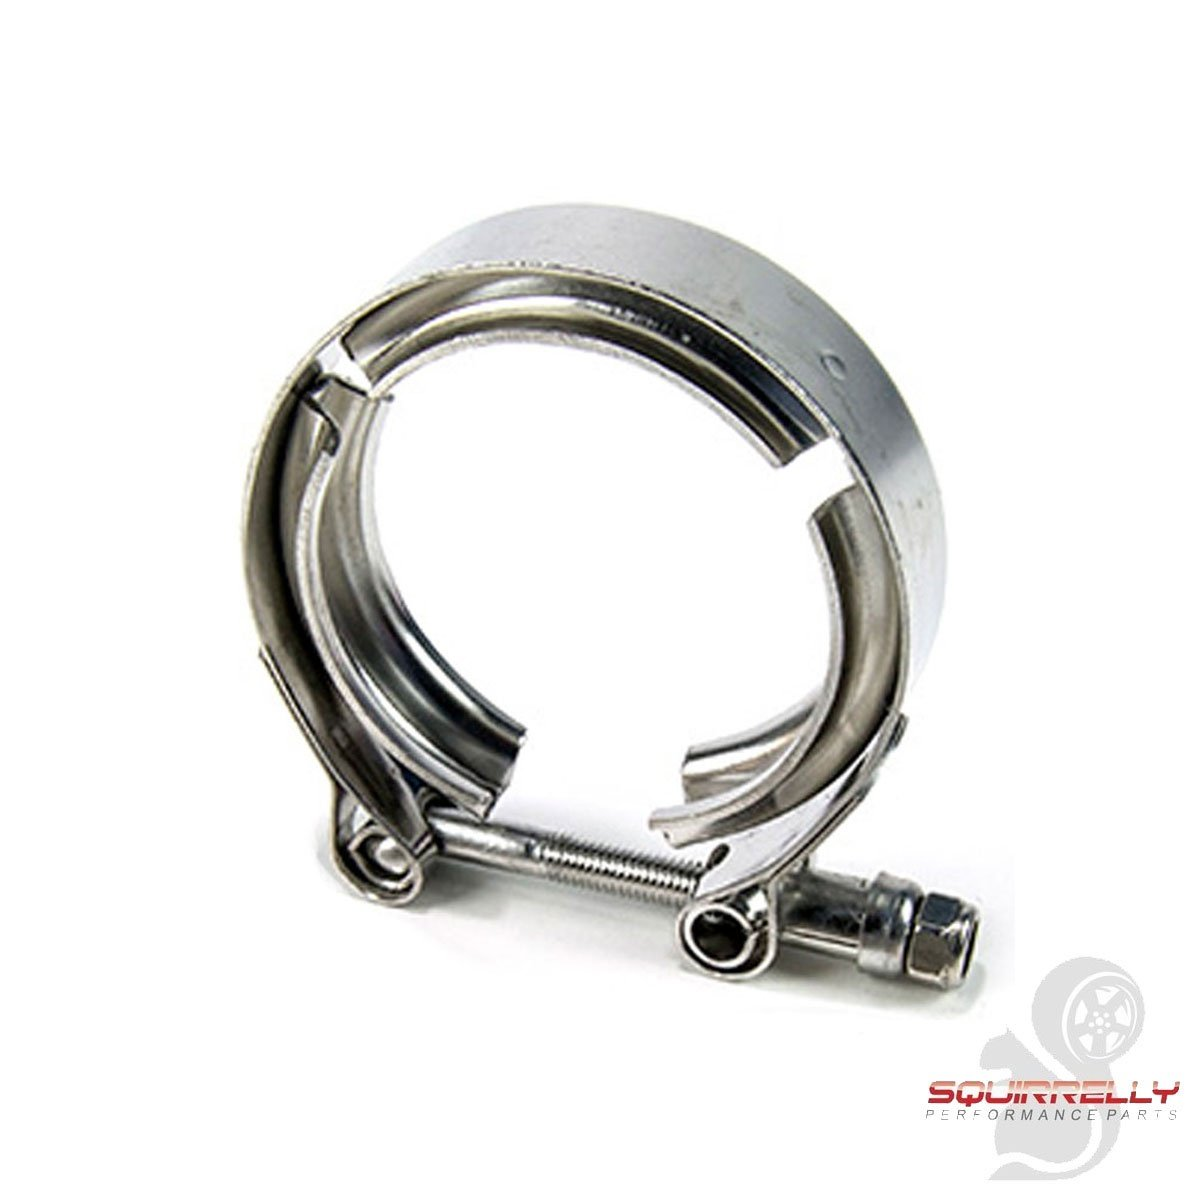 Squirrelly Universal 3.5' Inch Stainless Steel V-Band Turbo Downpipe Exhaust Clamp Squirrelly Performance Parts